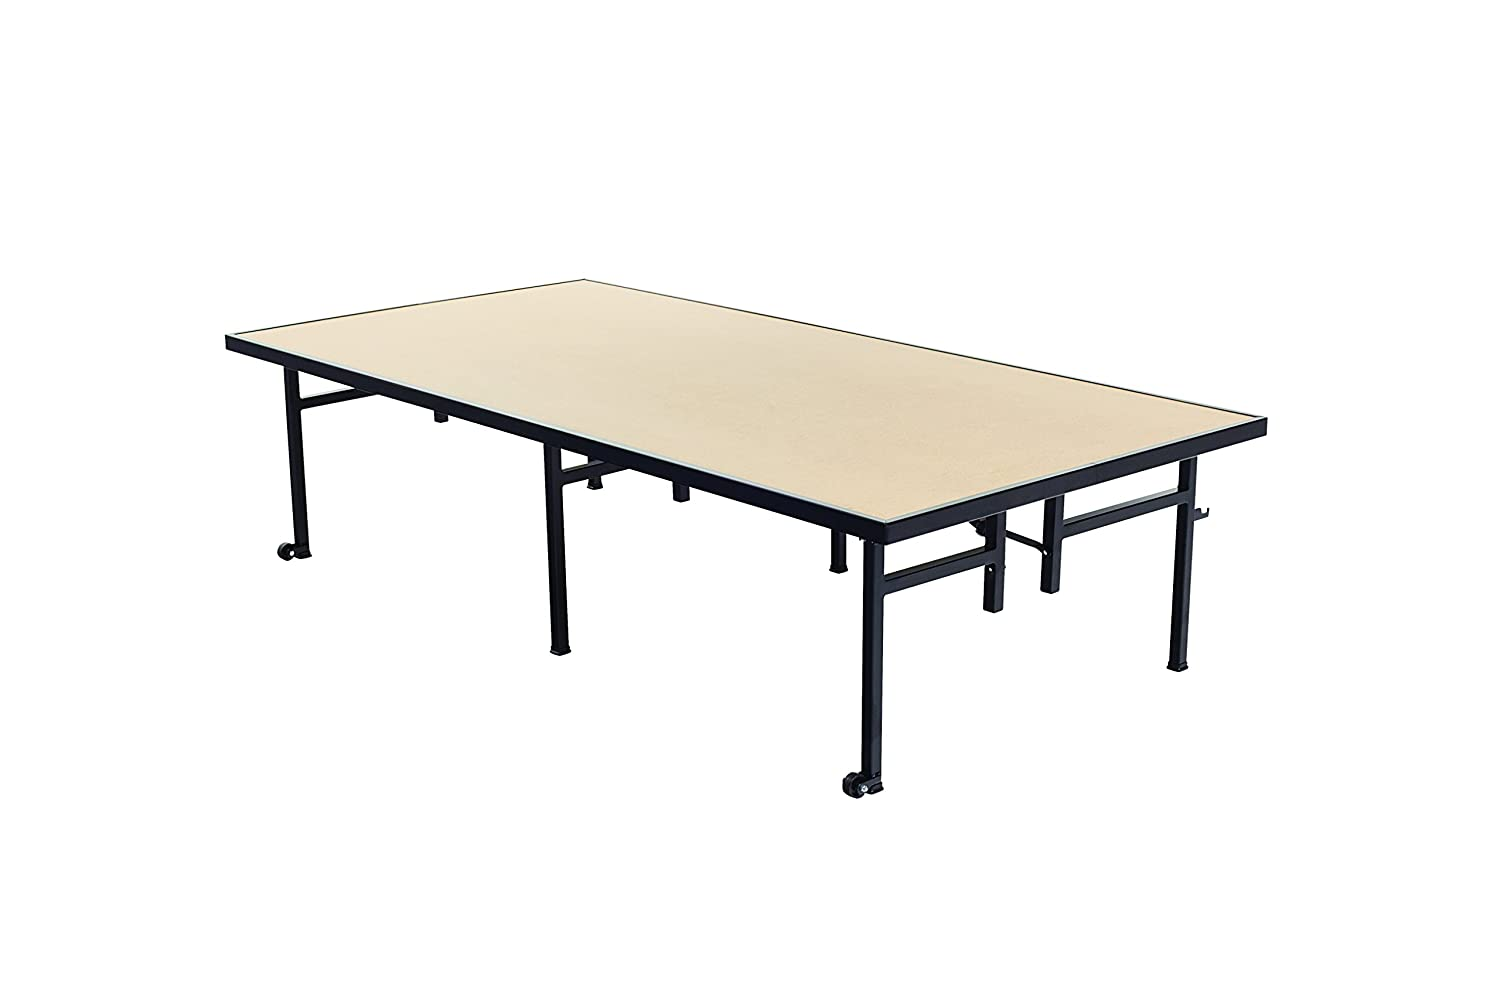 Amtab St3816h Fixed Height Stage Hardboard Top 36 W X 96 L X 16 H 100 Made In The Usa Amtab Industrial Scientific